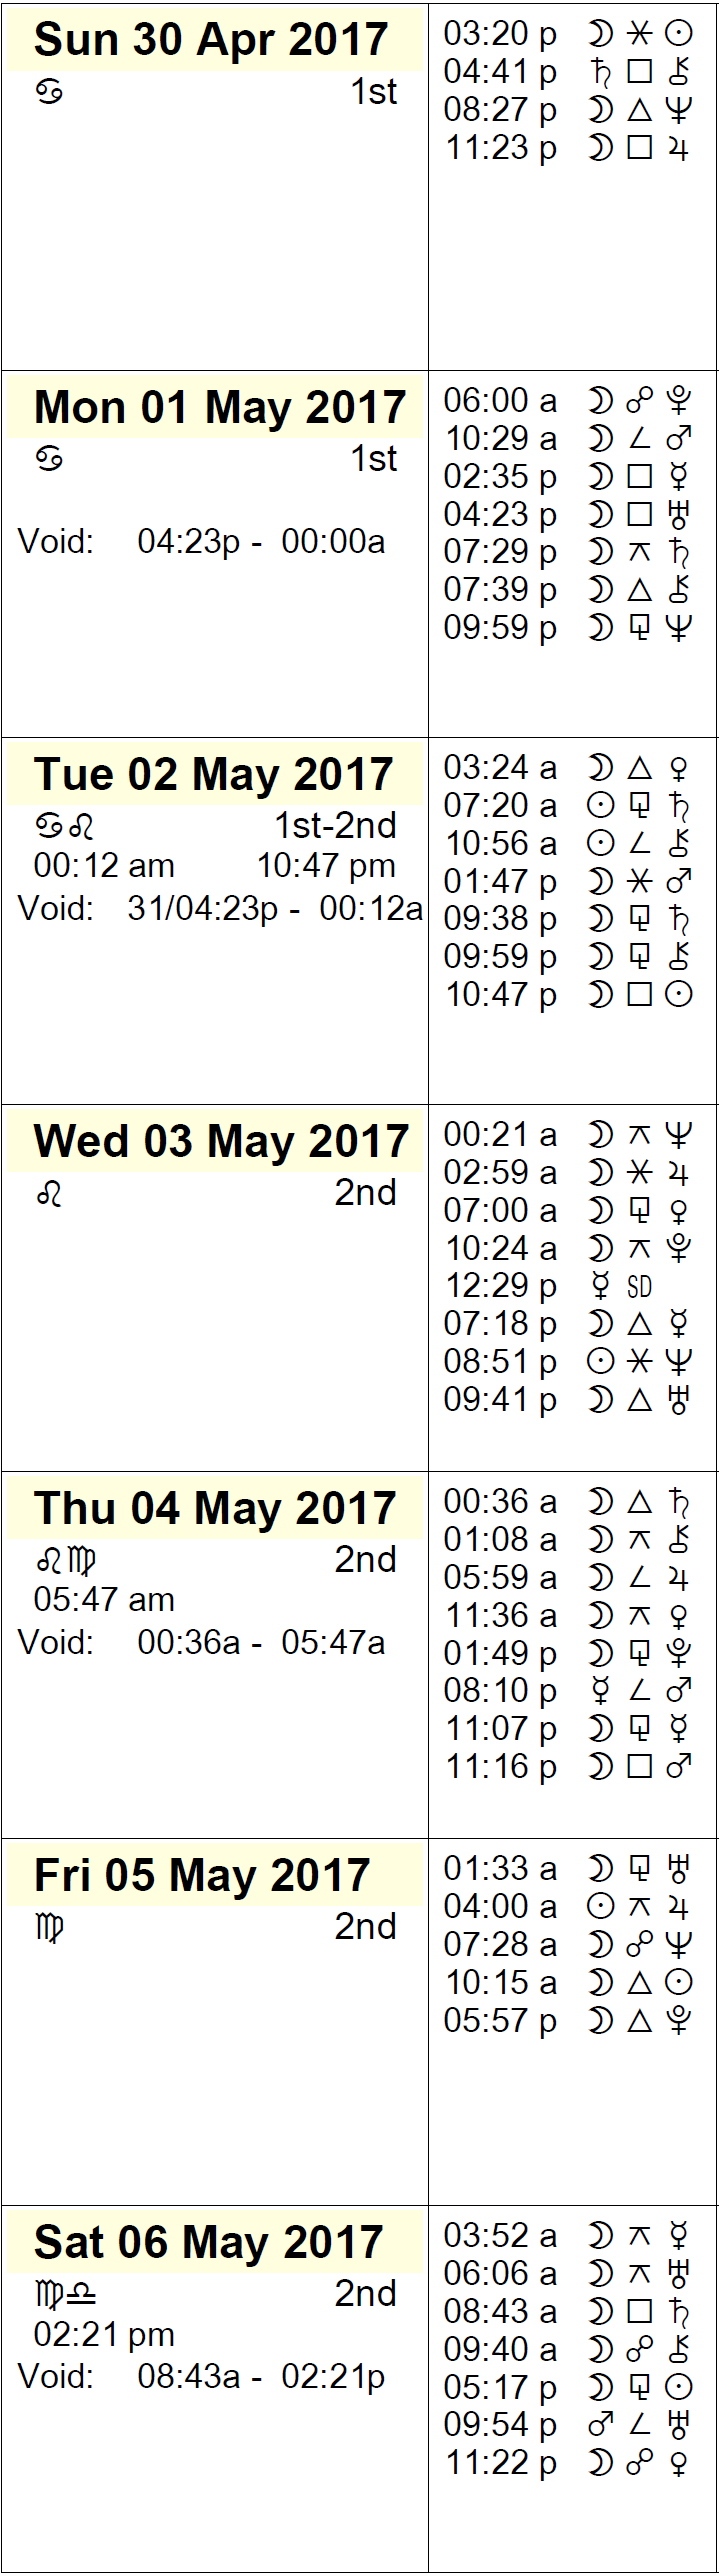 This Week in Astrology Calendar - April 30 to May 6, 2017